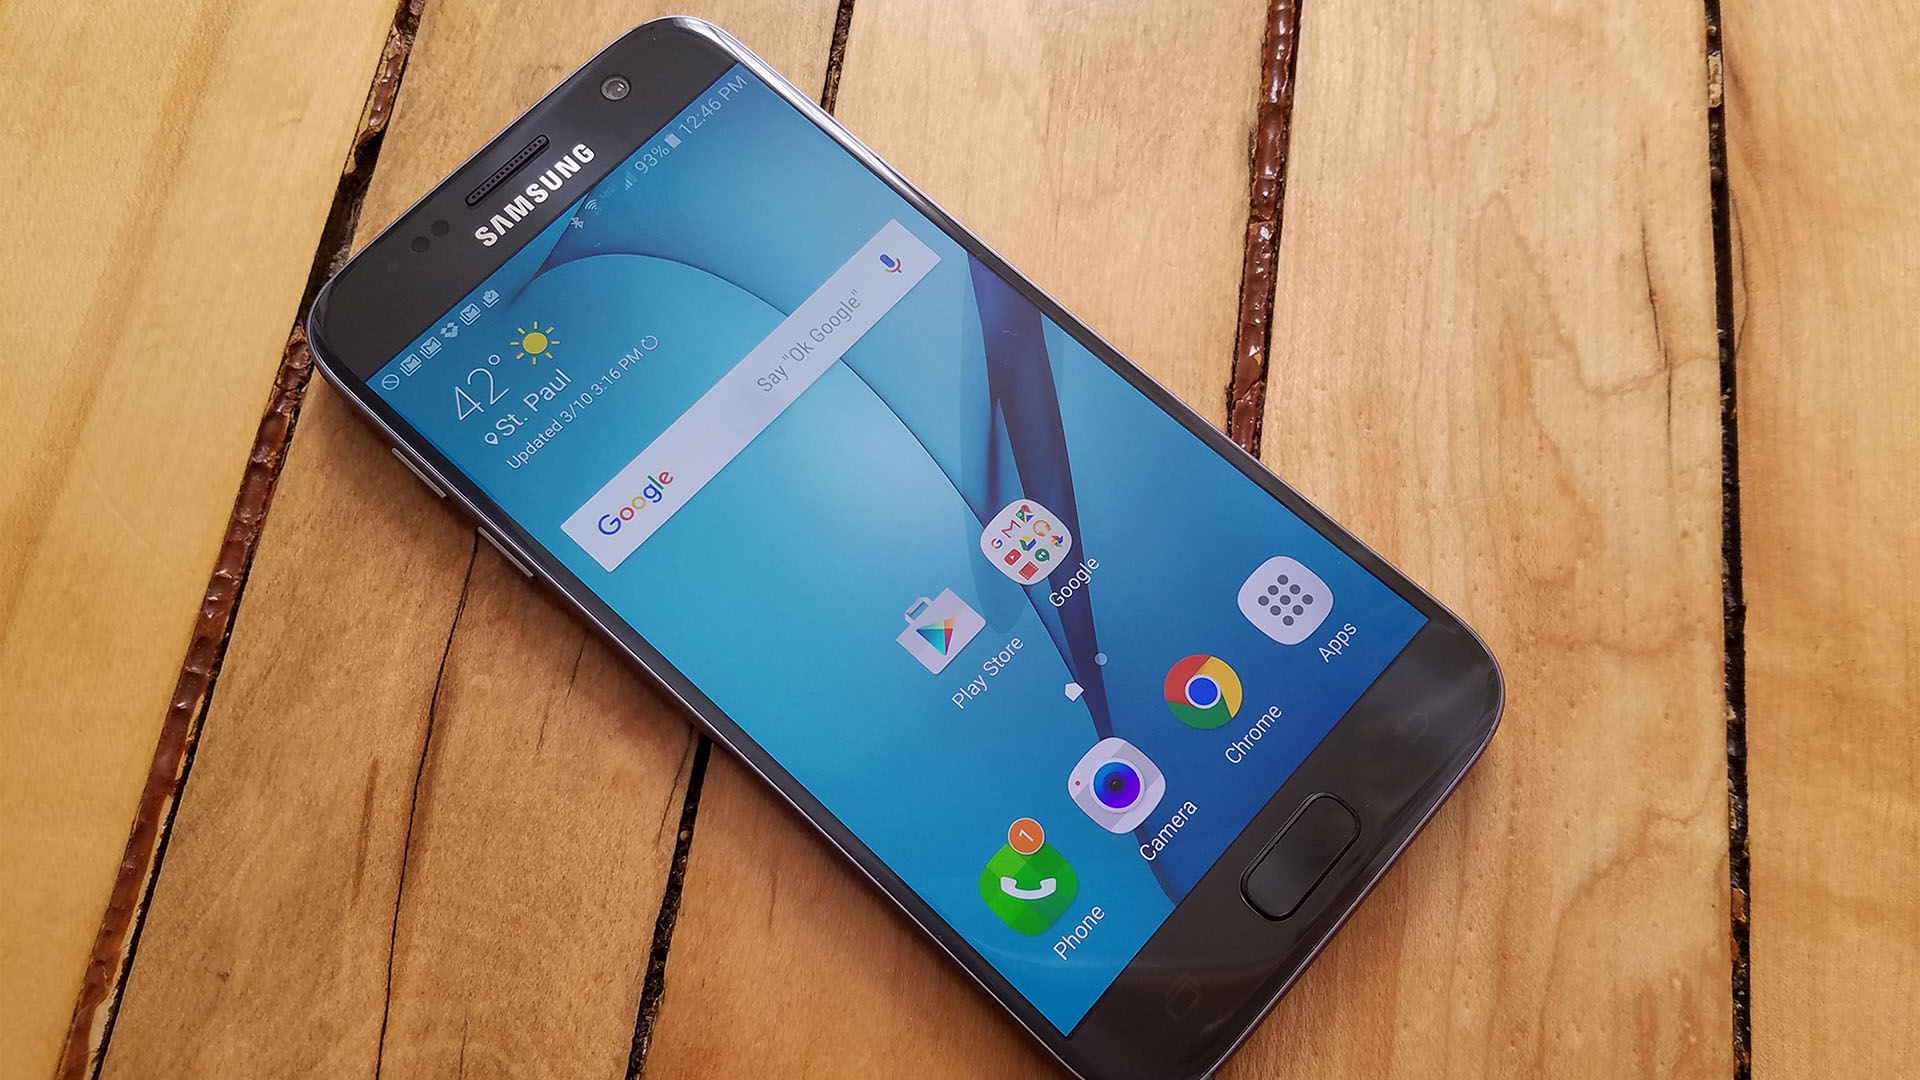 Phone Android Phone With Biggest Battery the best unlocked and carrier android smartphone july 2016 tested samsung made gs7 about a millimeter thicker than gs6 but it had good reason theres more room inside for bigger